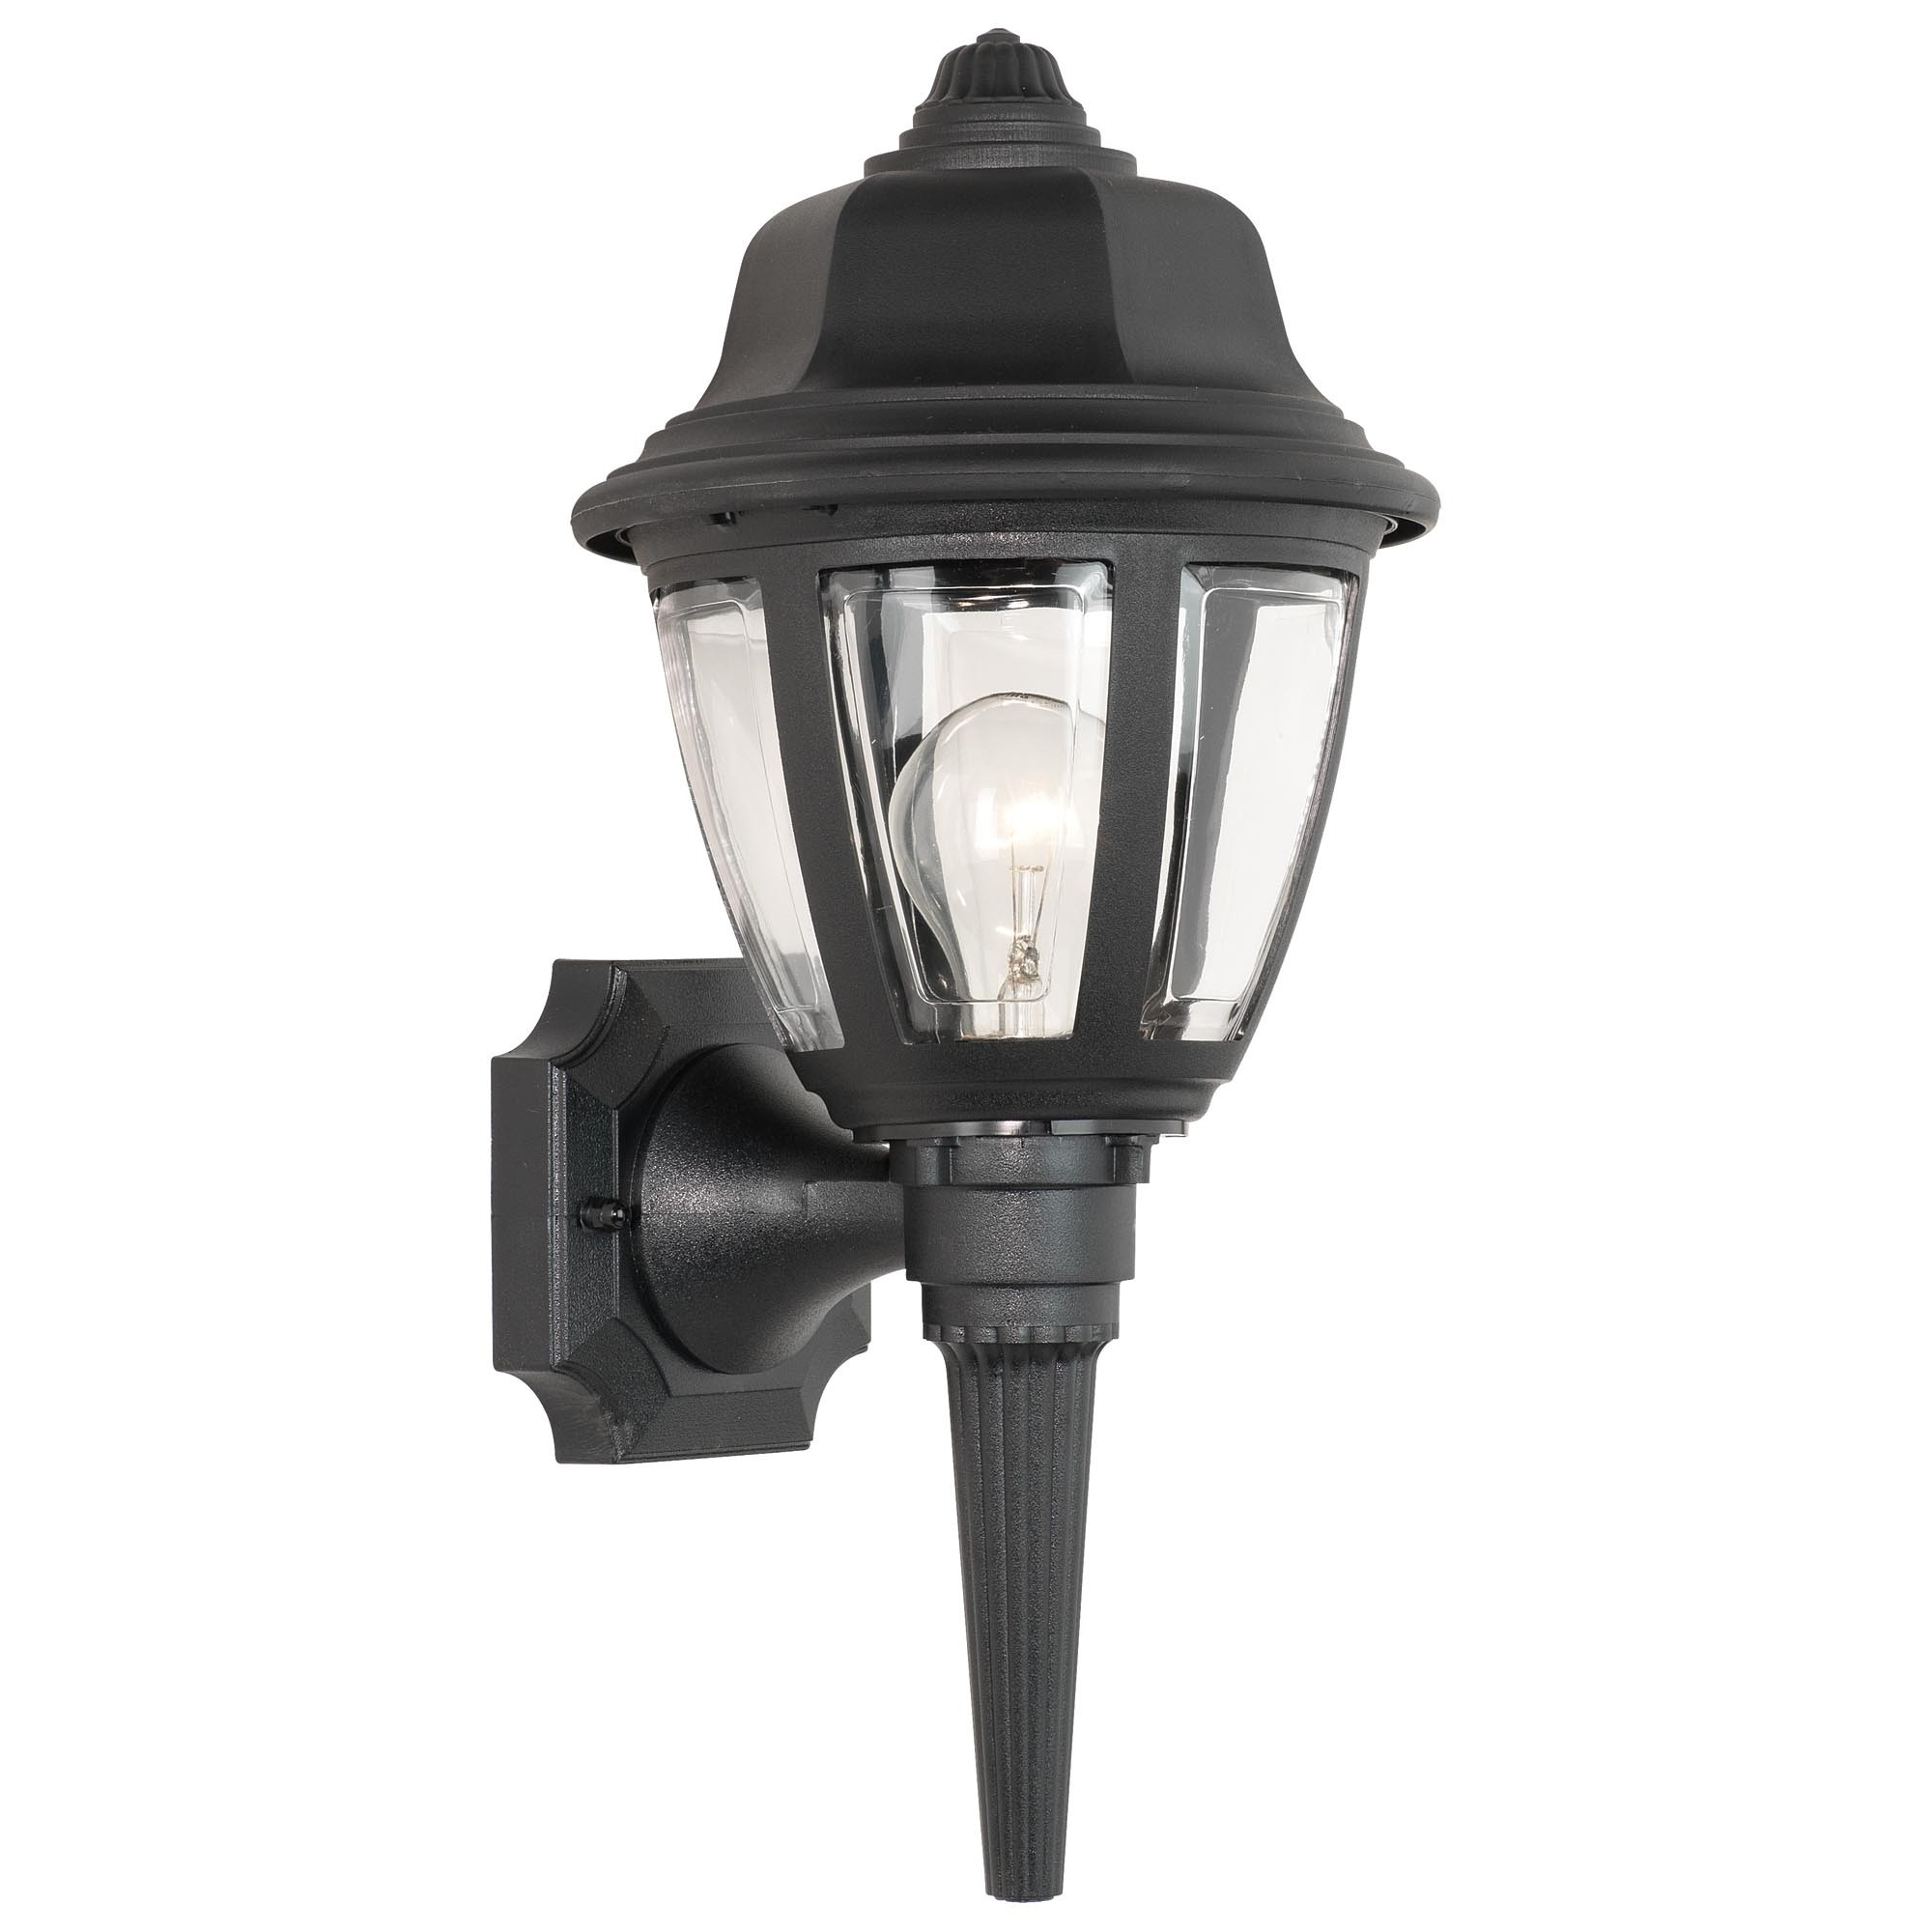 Plastic Lanterns Outdoor Lights Light Splendid Black Wall Lantern With Regard To Outdoor Plastic Lanterns (View 15 of 20)